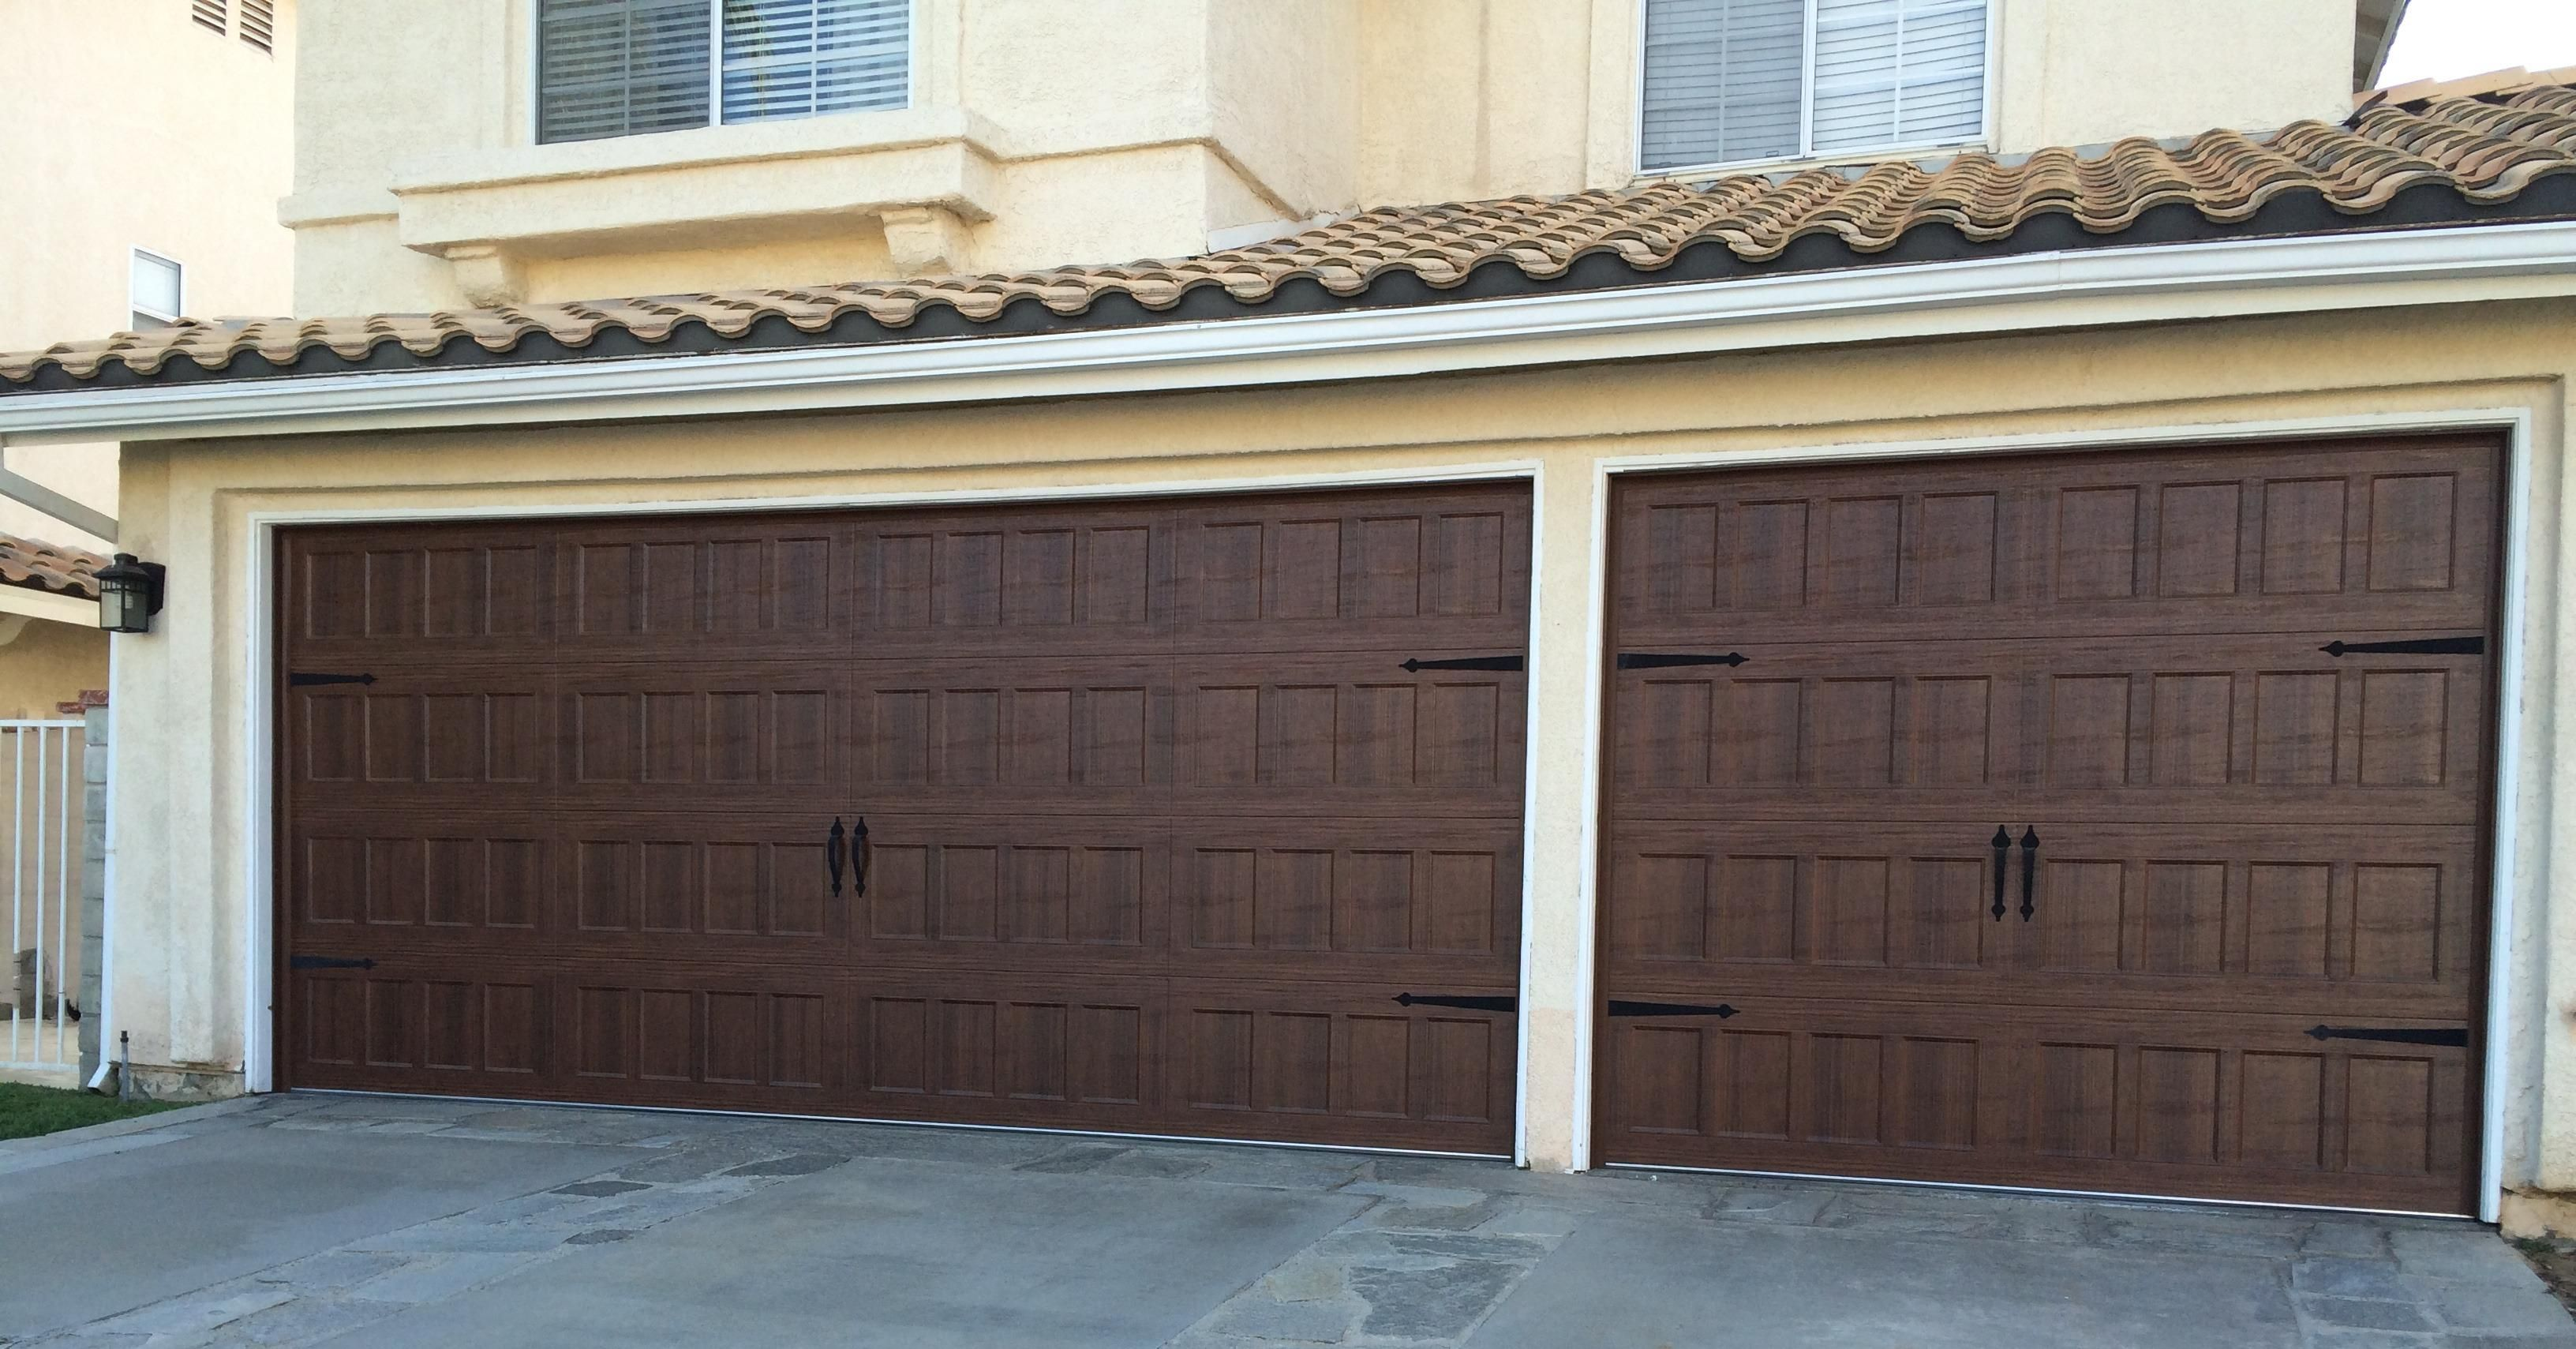 Charmant Cook Garage Doors Santa Clarita For Your Own Home